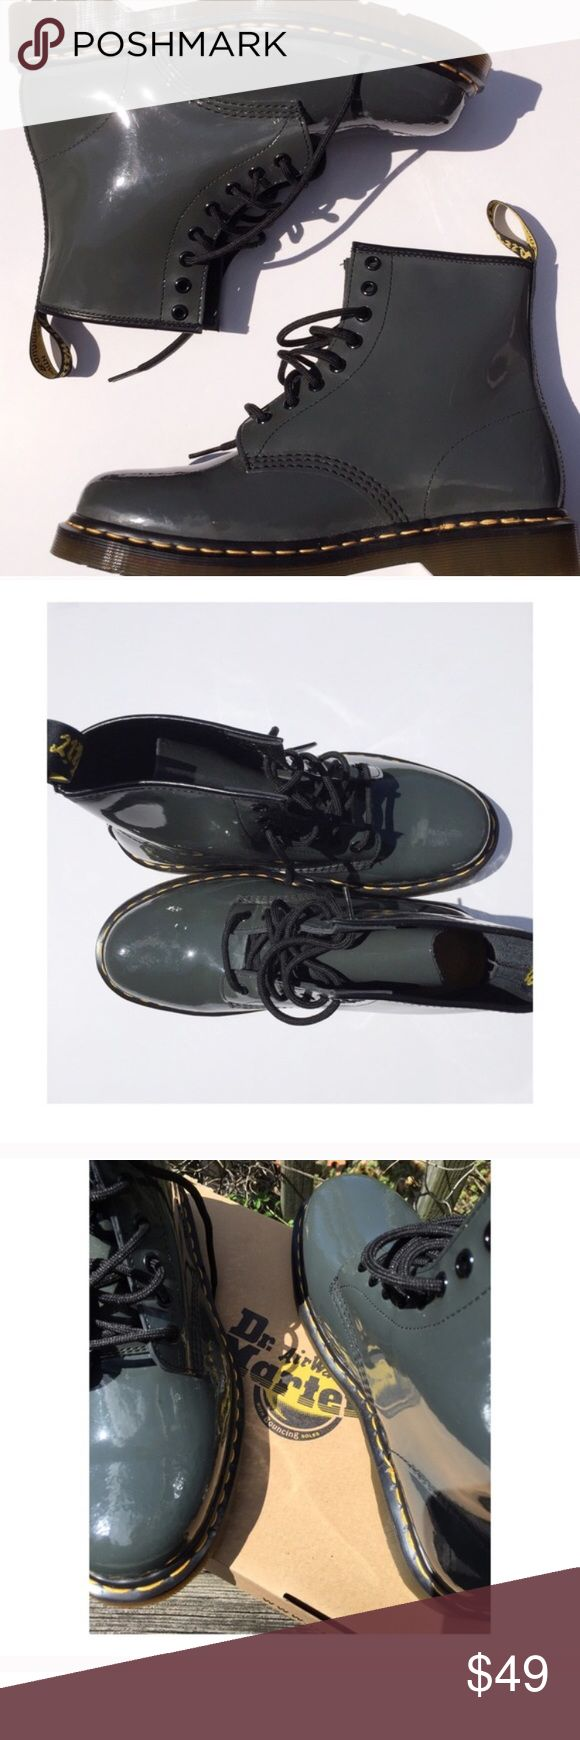 Dr. Martens Dr. Marten patient leather boots. Cool dark gray color with green/blue undertones. I've never worn these out of the house before so they're in perfect condition. Come in original box and packaging with extra shoelaces (yellow). Dr. Martens Shoes